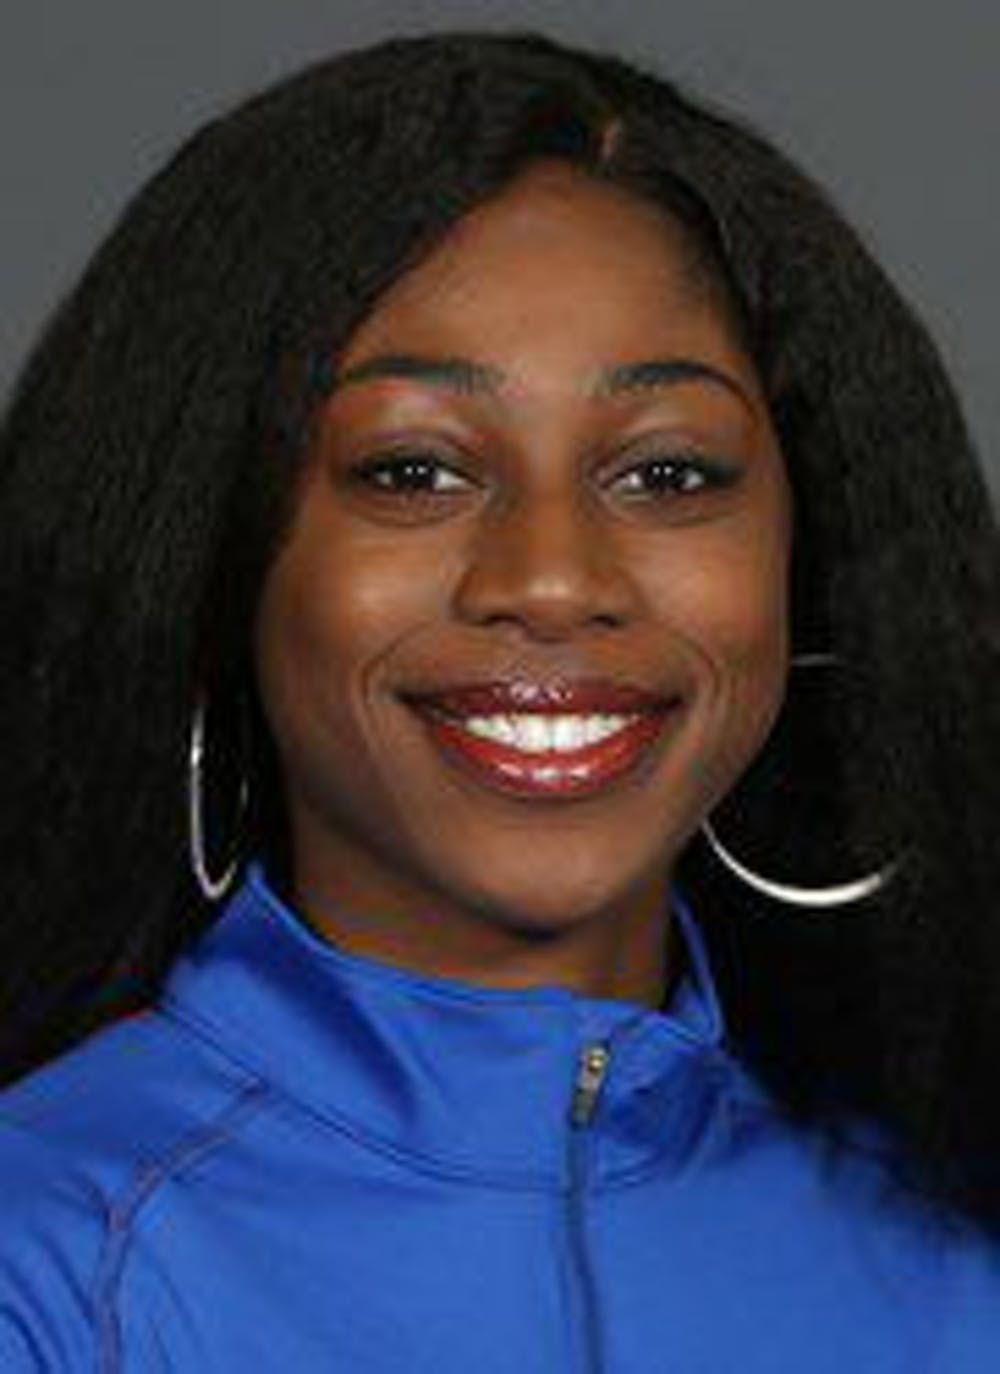 <p>Senior jumper Darrielle McQueen finished second in the women's long jump at the NCAA Outdoor Championships in Eugene, Oregon. She captured 8 points for Florida in the event, contributing to the team's grand total of 17, good for second overall.&nbsp;</p>